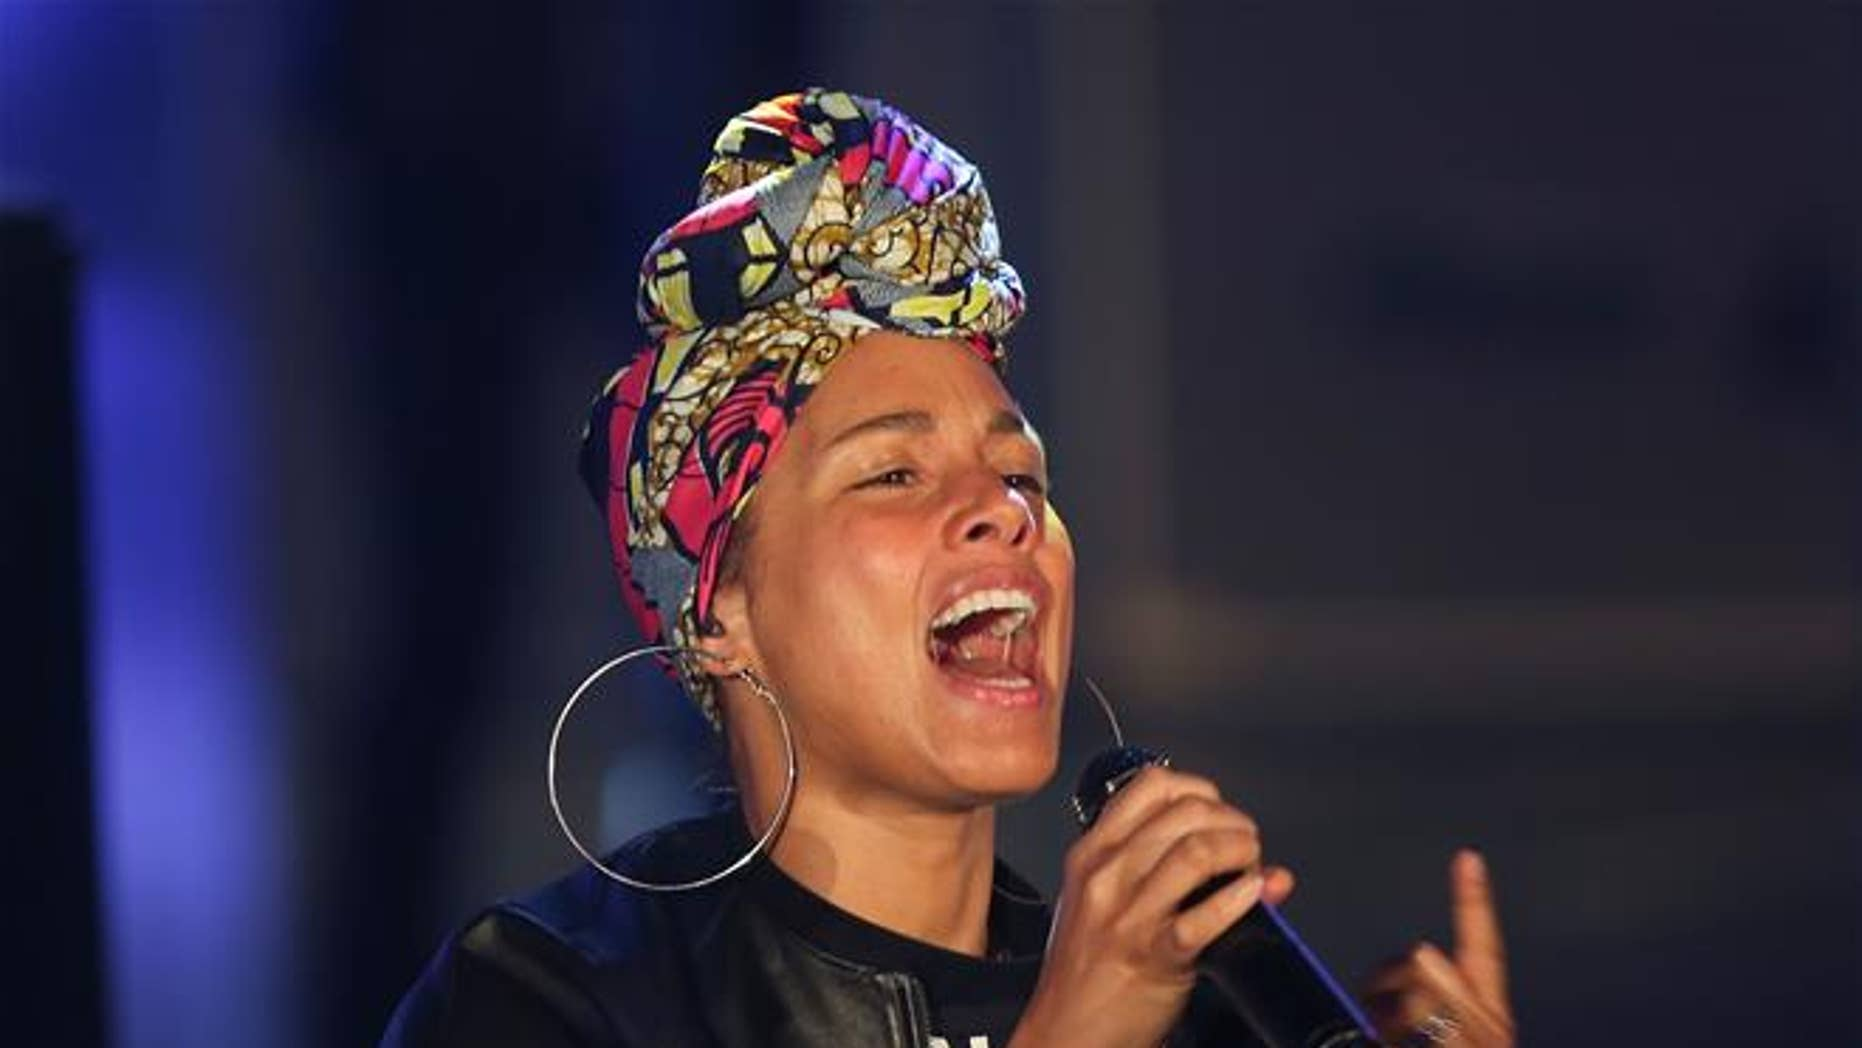 Alicia Keys performs in Italy last month.